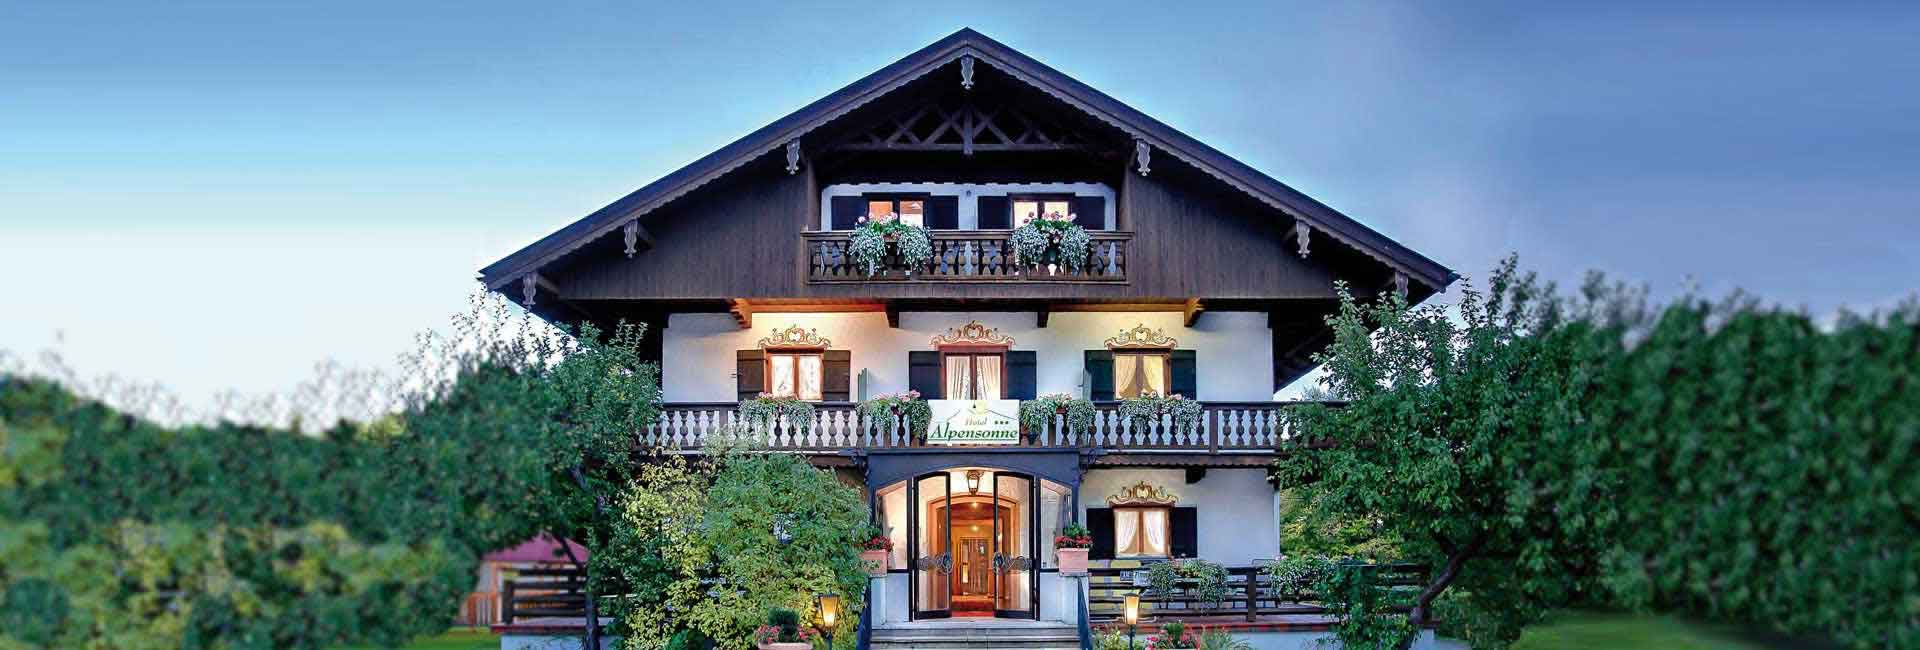 Hotel Alpensonne Bad Wiessee